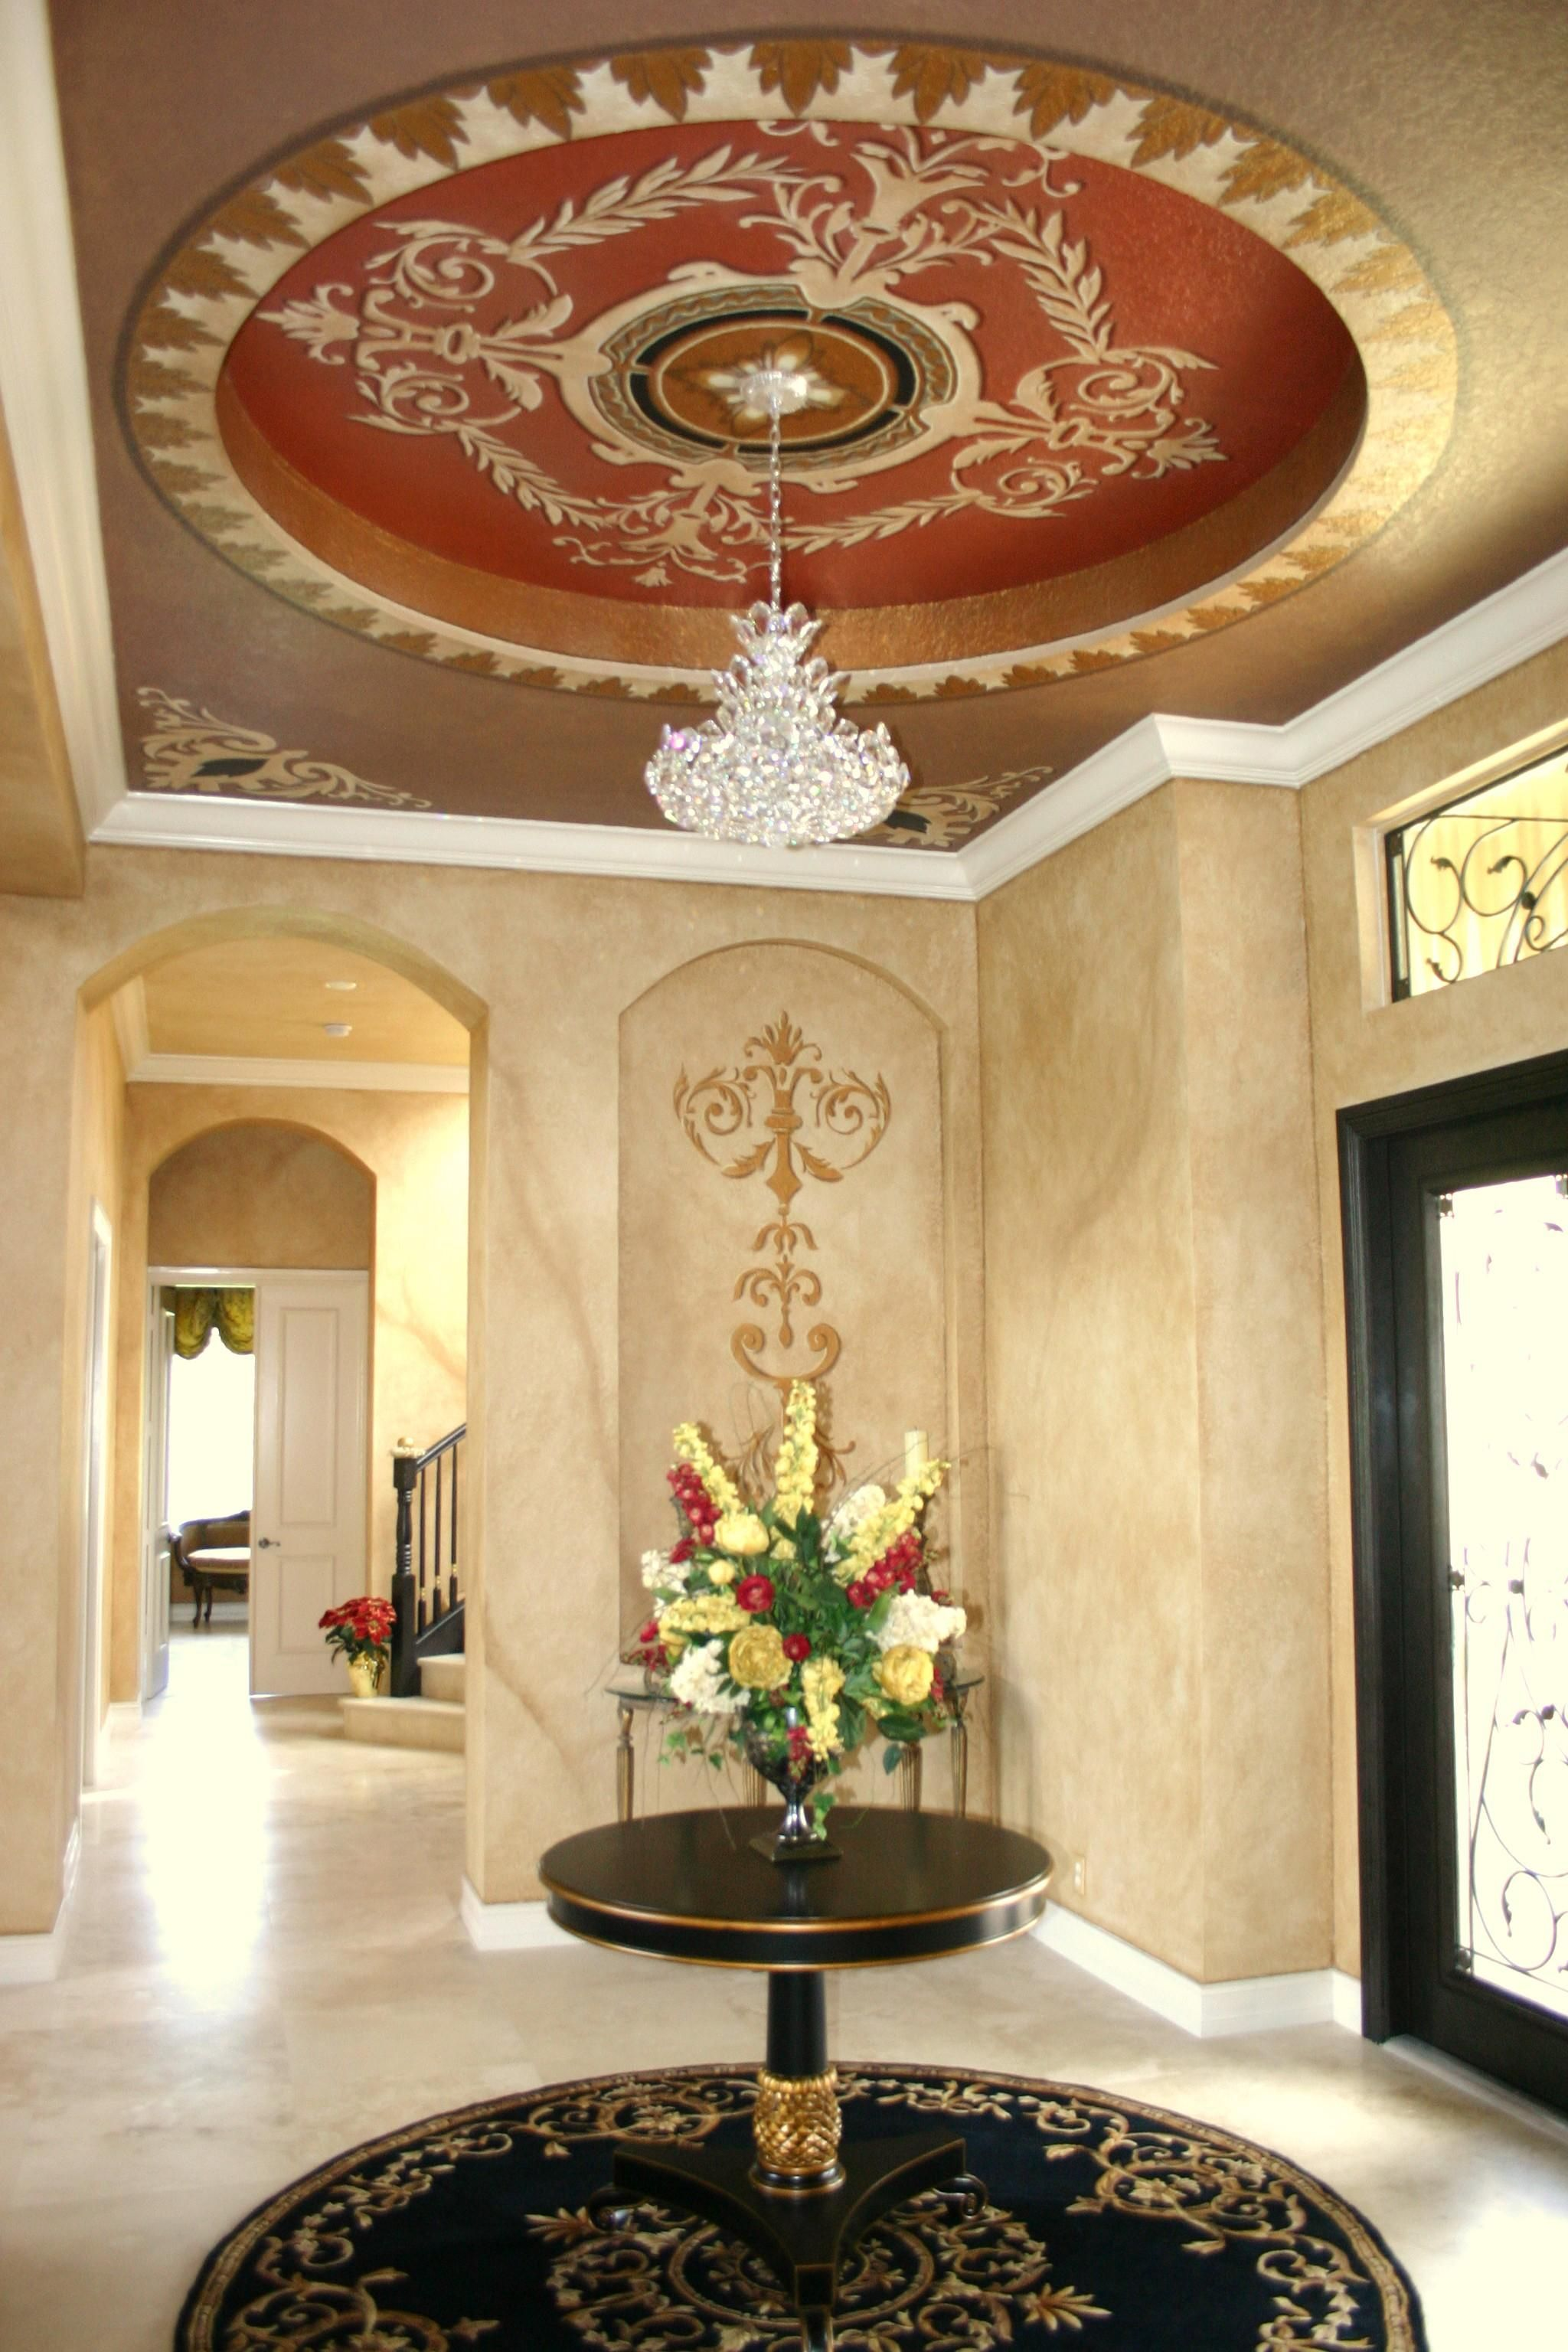 FOYER CEILING | decor | Pinterest | Foyers, Ceiling and Ceilings